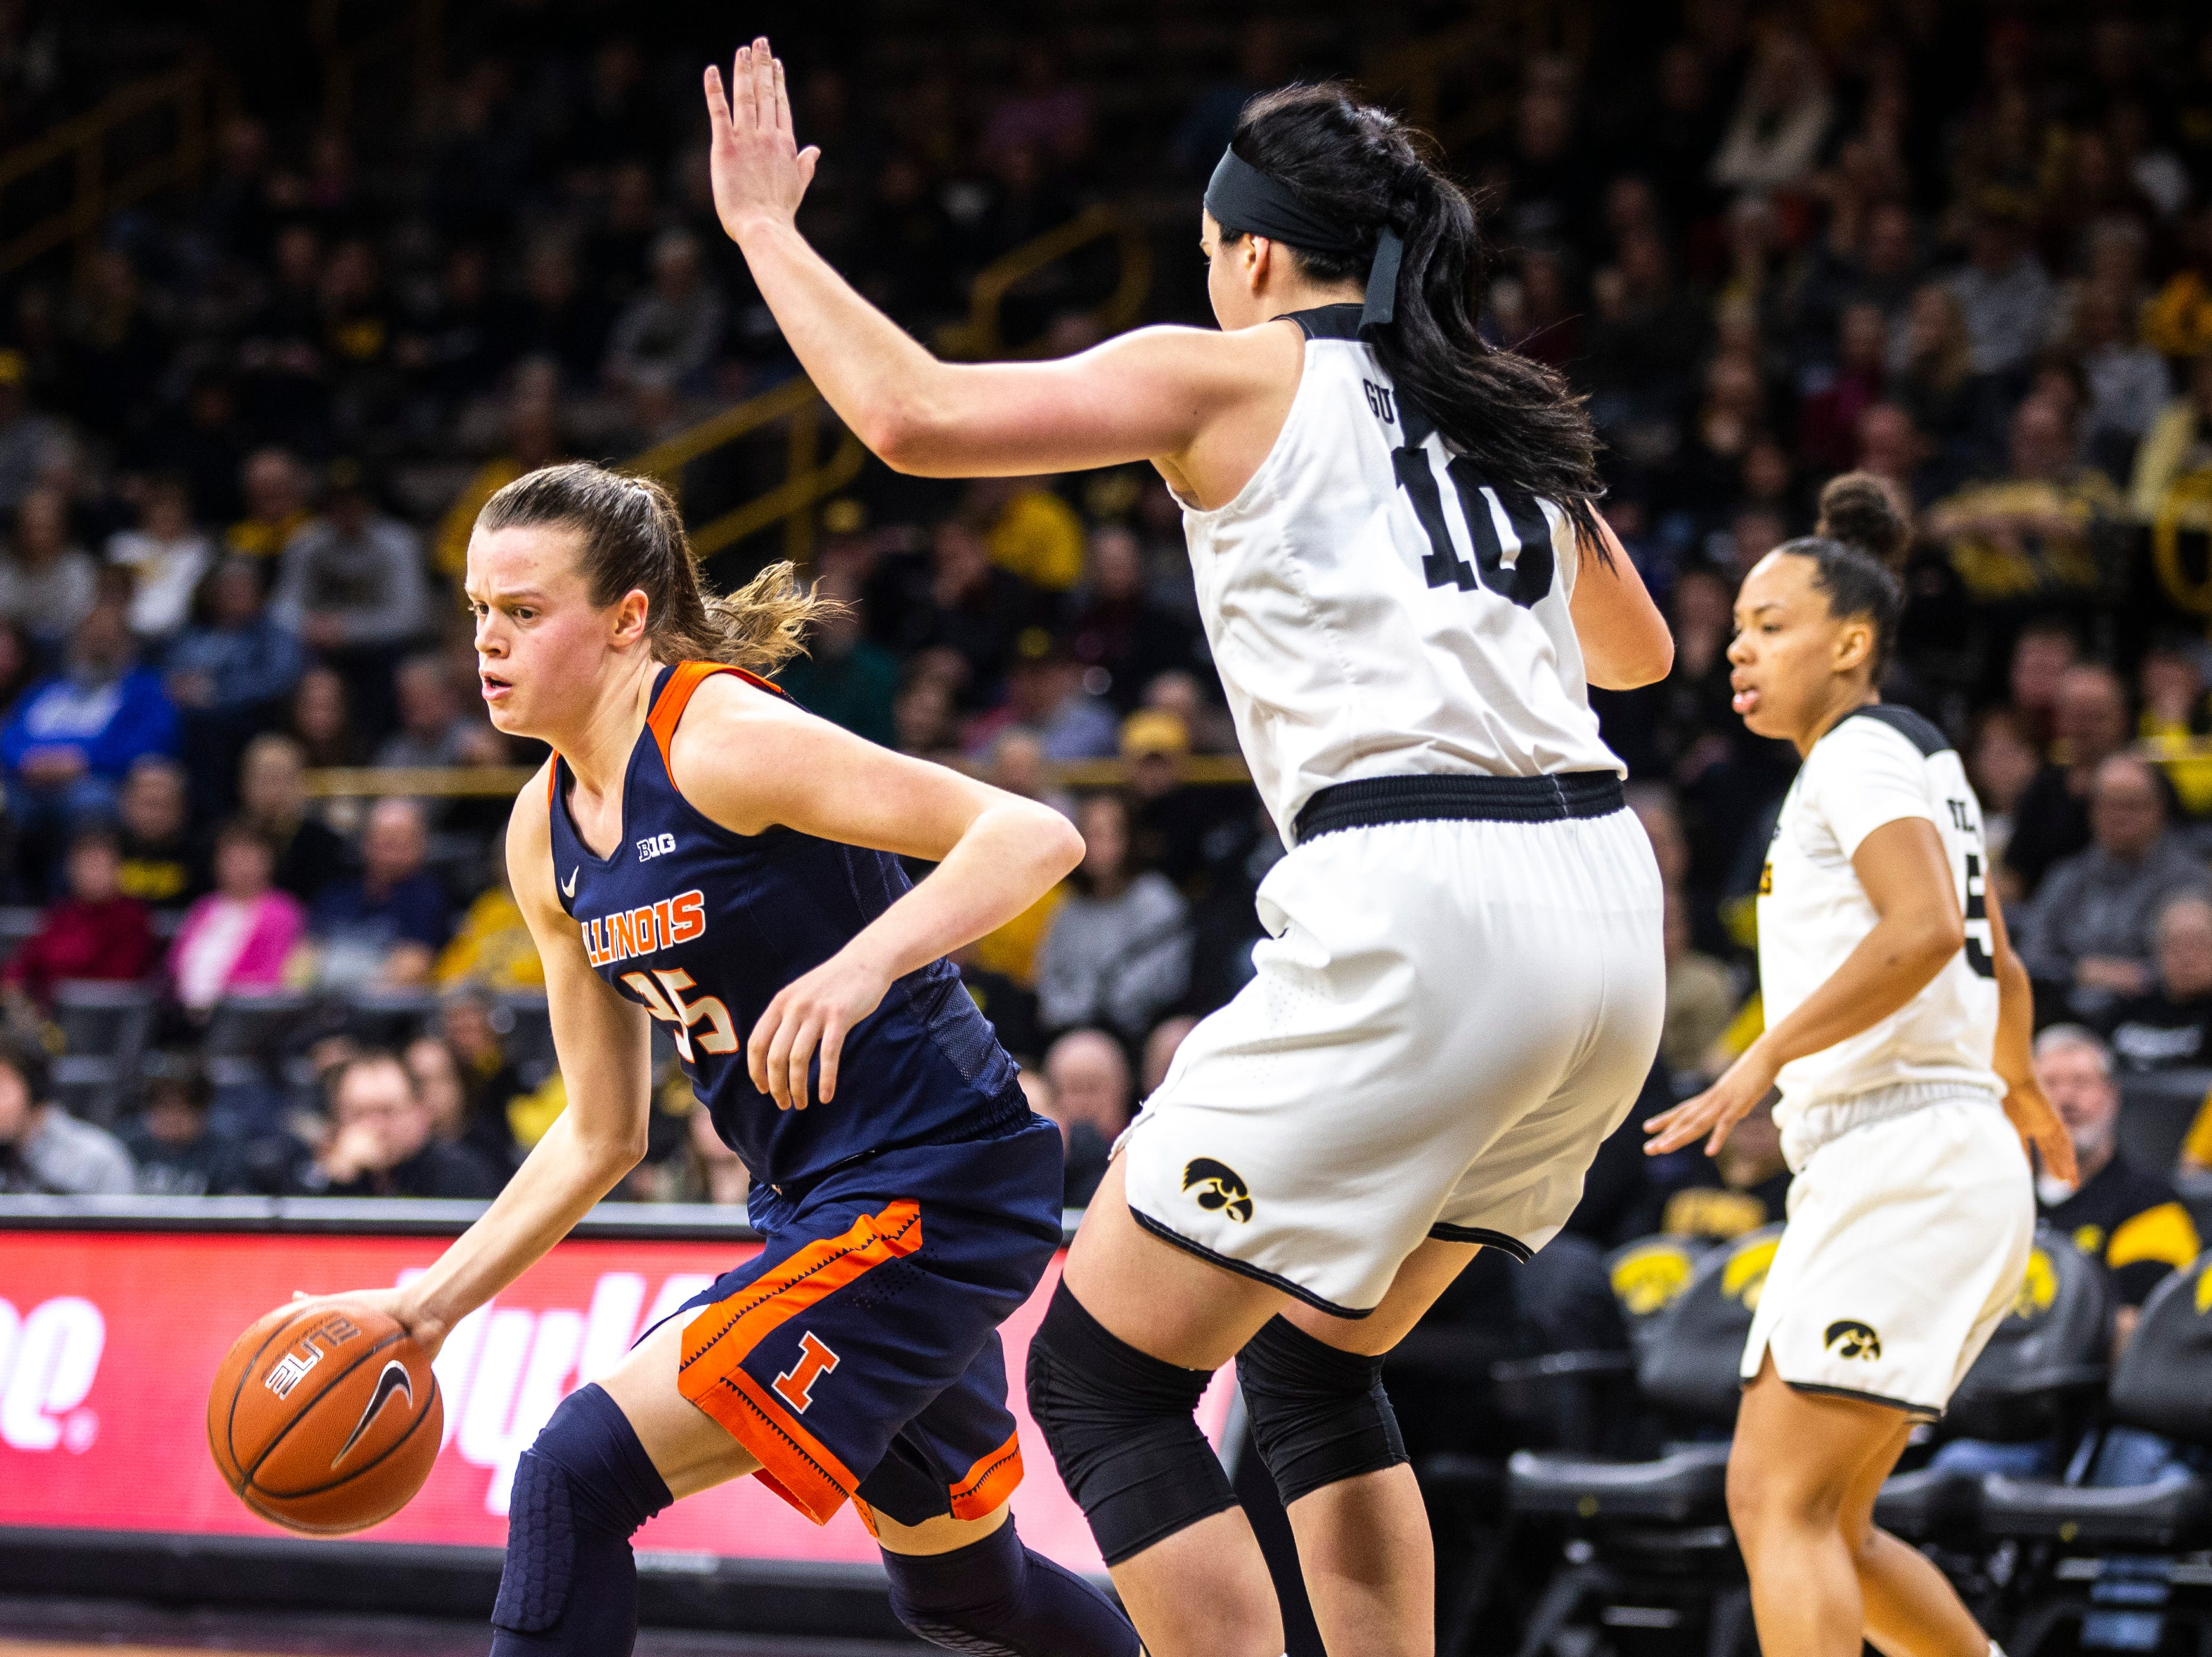 Illinois forward Alex Wittinger (35) takes the ball up court while Iowa center Megan Gustafson (10) defends during a NCAA Big Ten Conference women's basketball game on Thursday, Feb. 14, 2019 at Carver-Hawkeye Arena in Iowa City, Iowa.